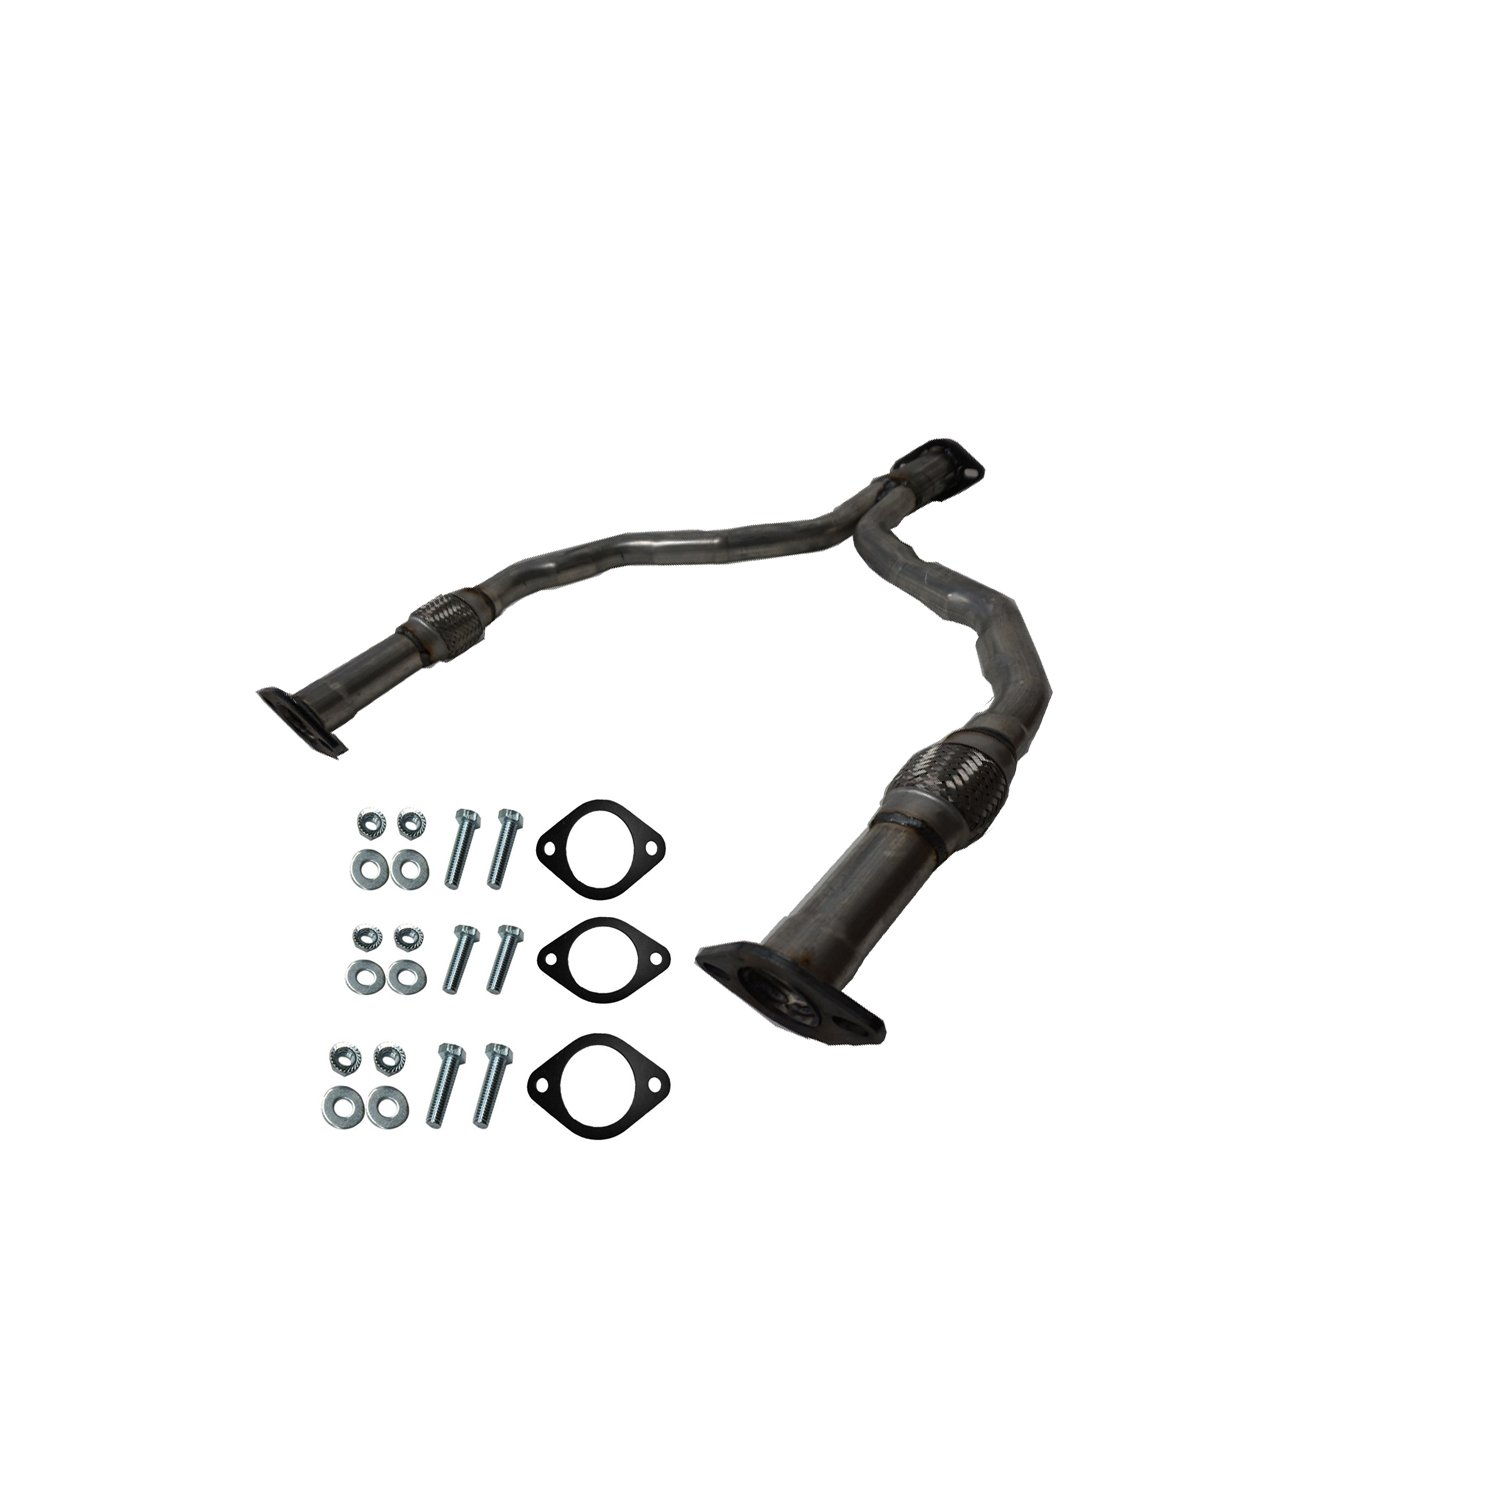 Replacement Exhaust Flex Y-Pipe 2003-2006 Infinity FX35 3.5L 2003-2006 Infinity FX45 4.5L AWD 2004-2006 Infinity G35 3.5L AWD